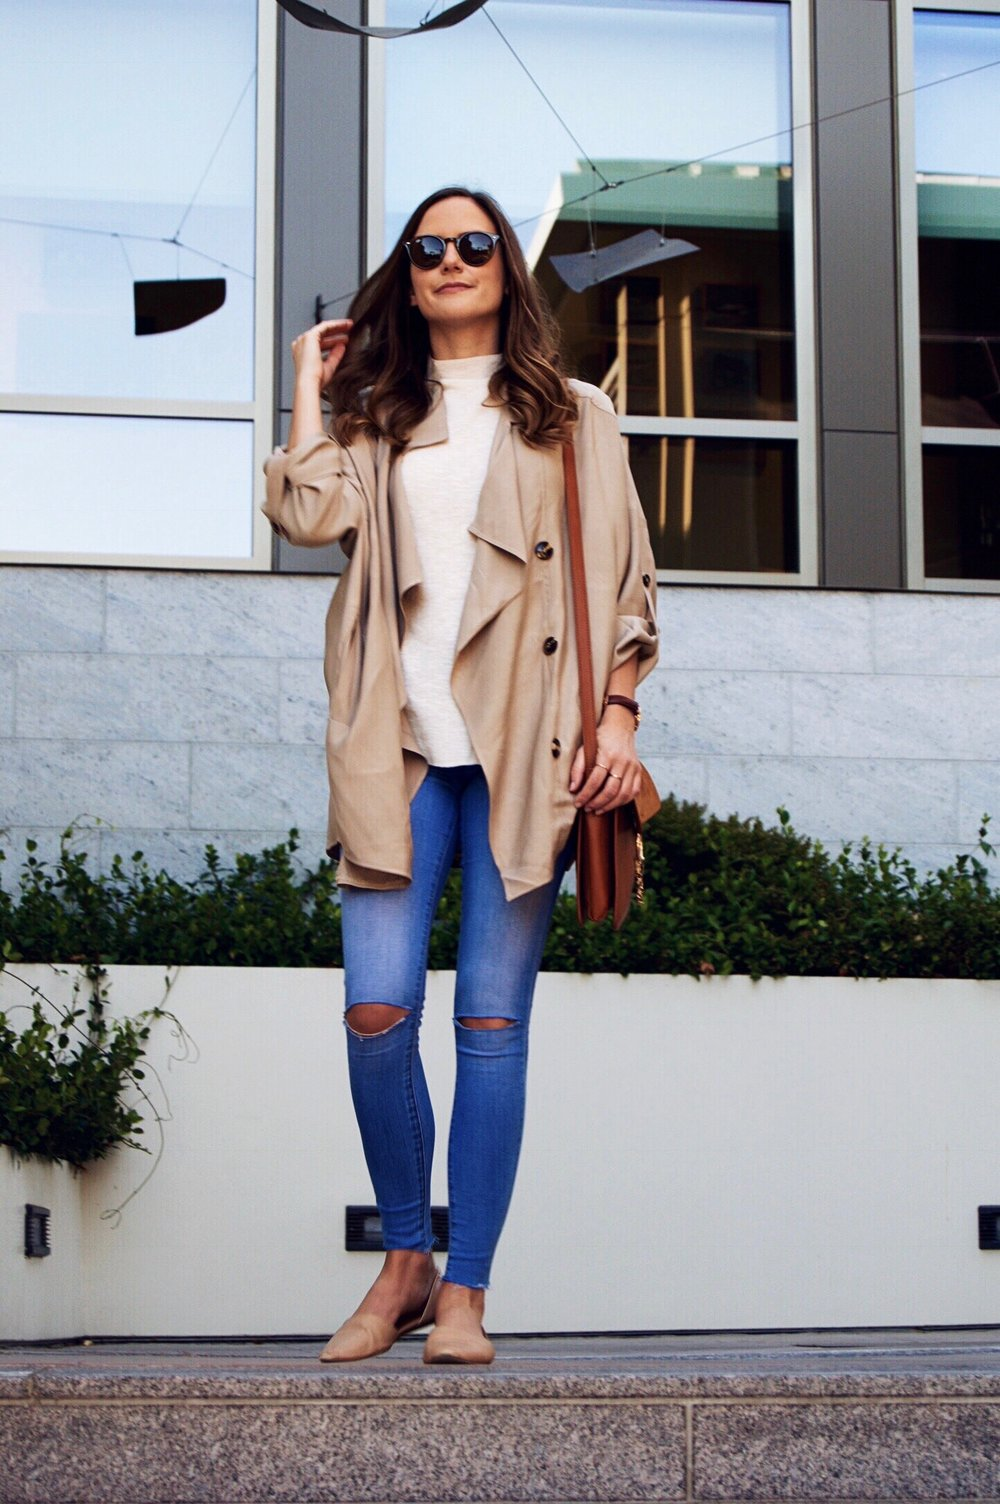 Shop the Look Below. Top: Nordstrom. Jacket: J.Coda Clothing c/o. Jeans: Nordstrom Rack. Shoes: Vince (sold out), similar here. Bag: SheIn c/o. Watch: Daniel Wellington c/o. Sunglasses: Ray-Ban. Rings: Gorjana c/o